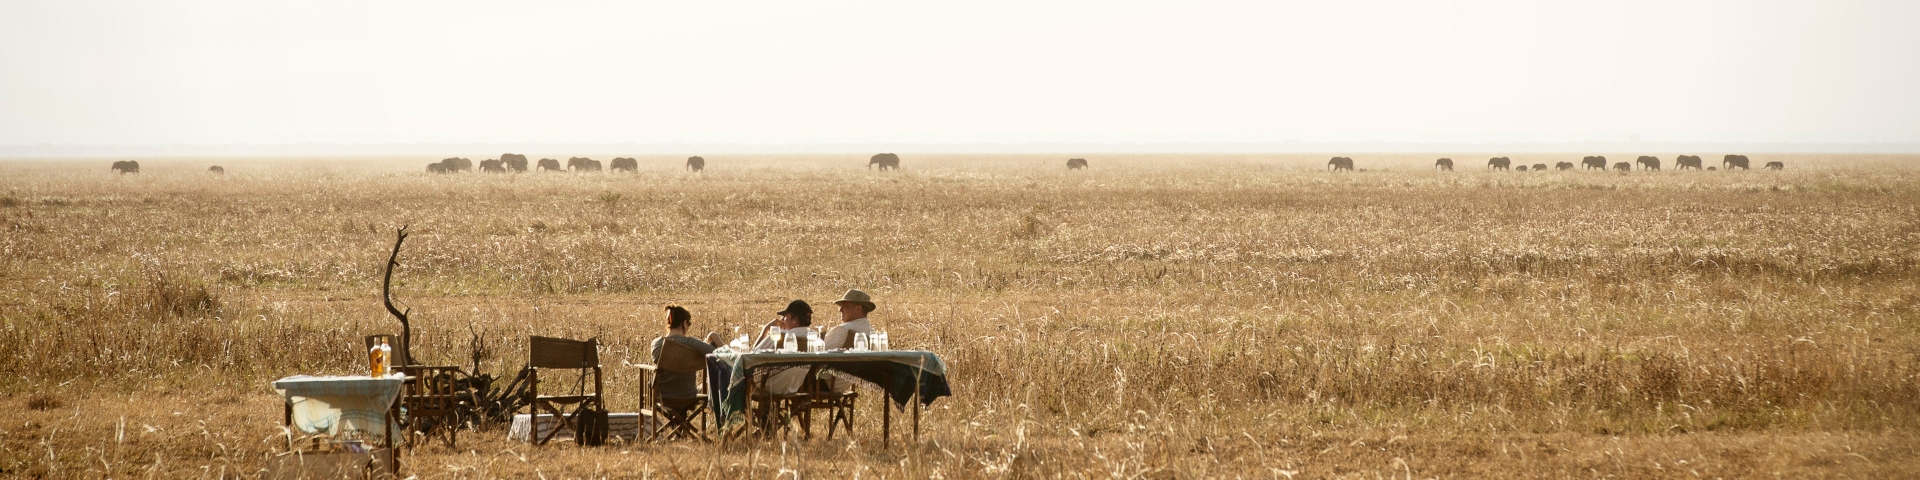 Accommodation in Katavi National Park Tanzania Plains View